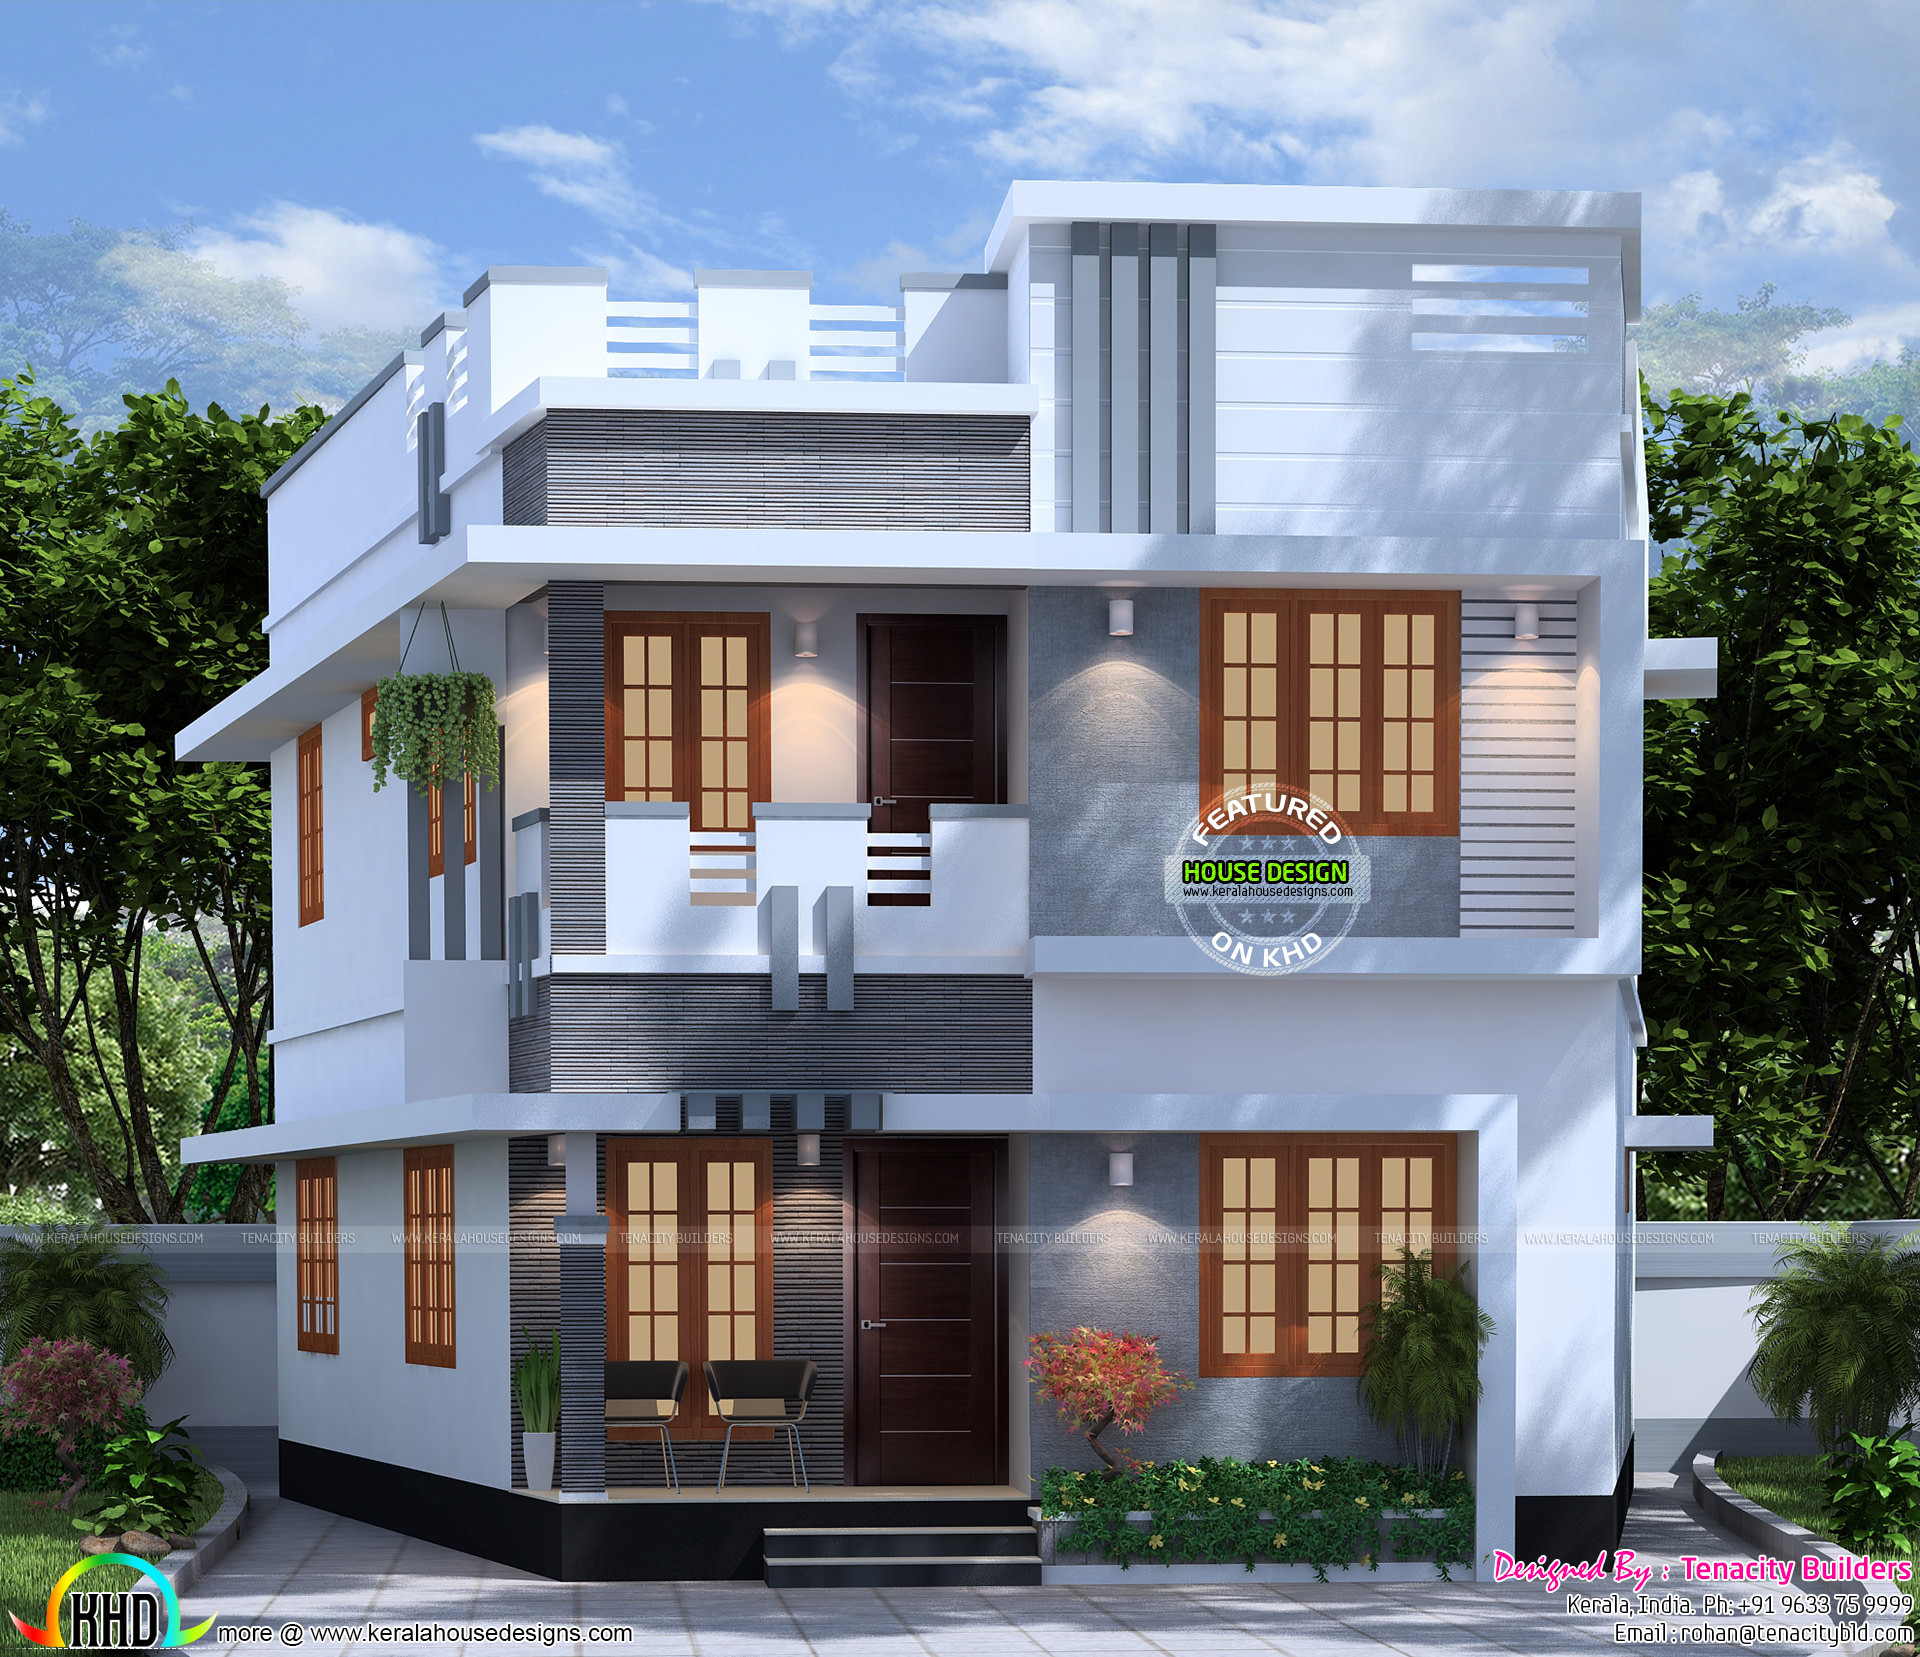 Home design 650 square feet for Kerala model house plans 1000 sq ft